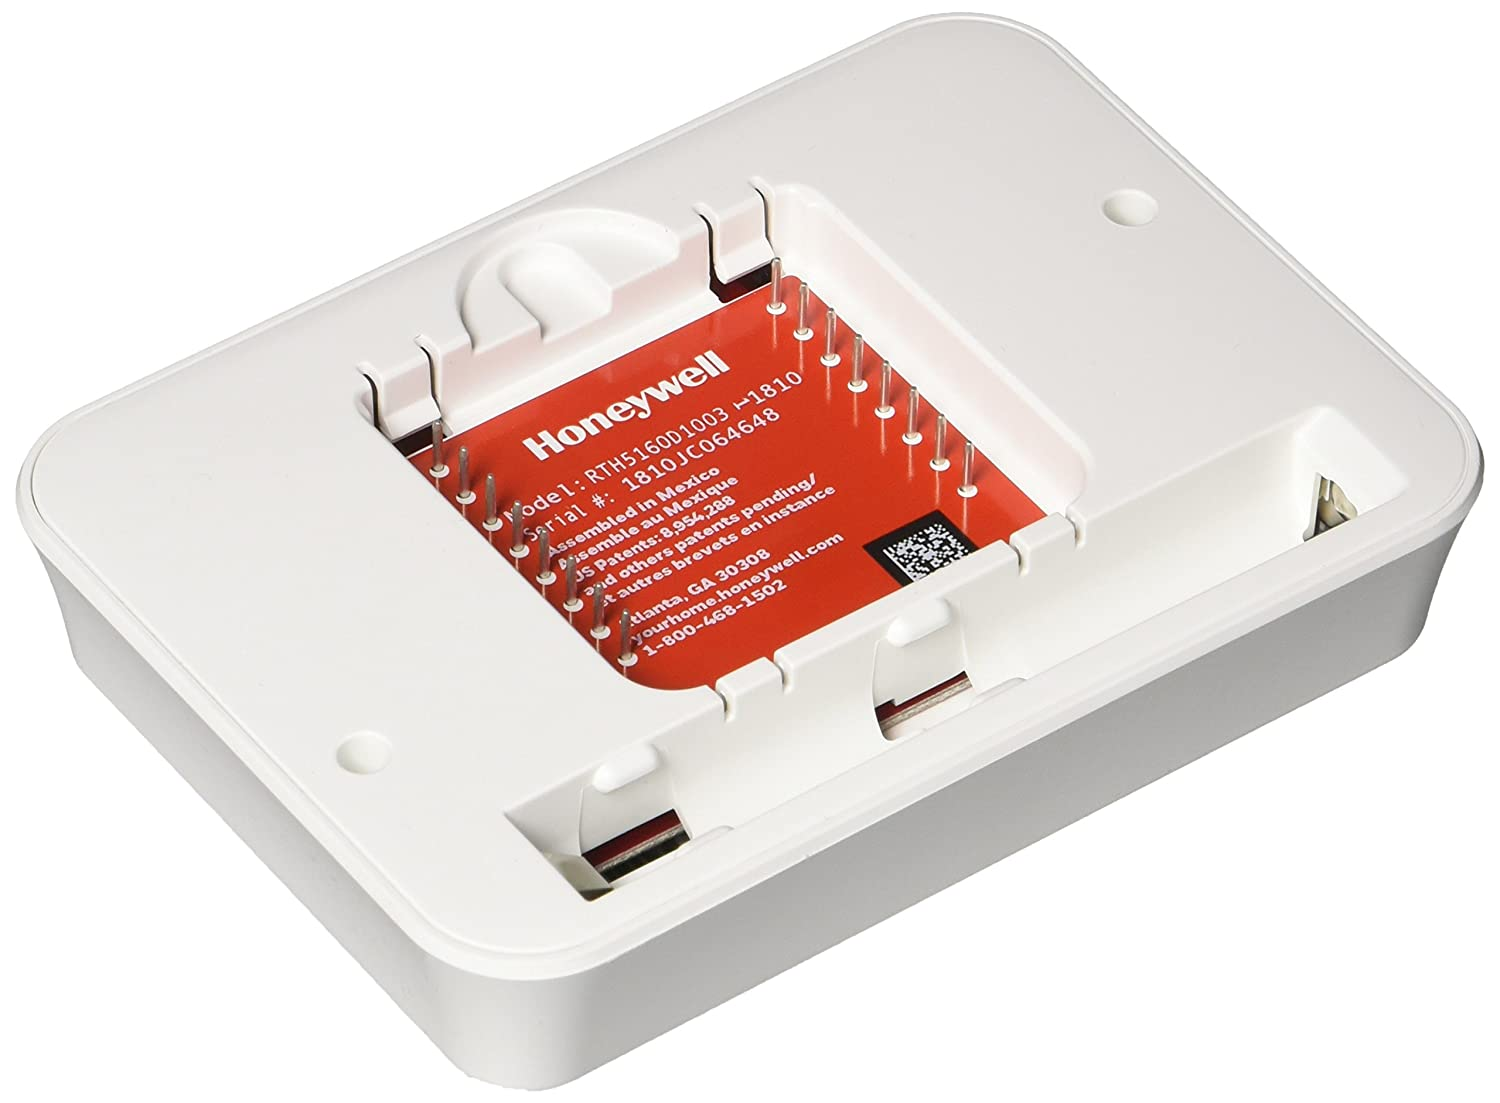 Honeywell Rth5160d1003 E Digital Thermostats Heat Cool Thermostat Th5110d1022 Wiring Diagram